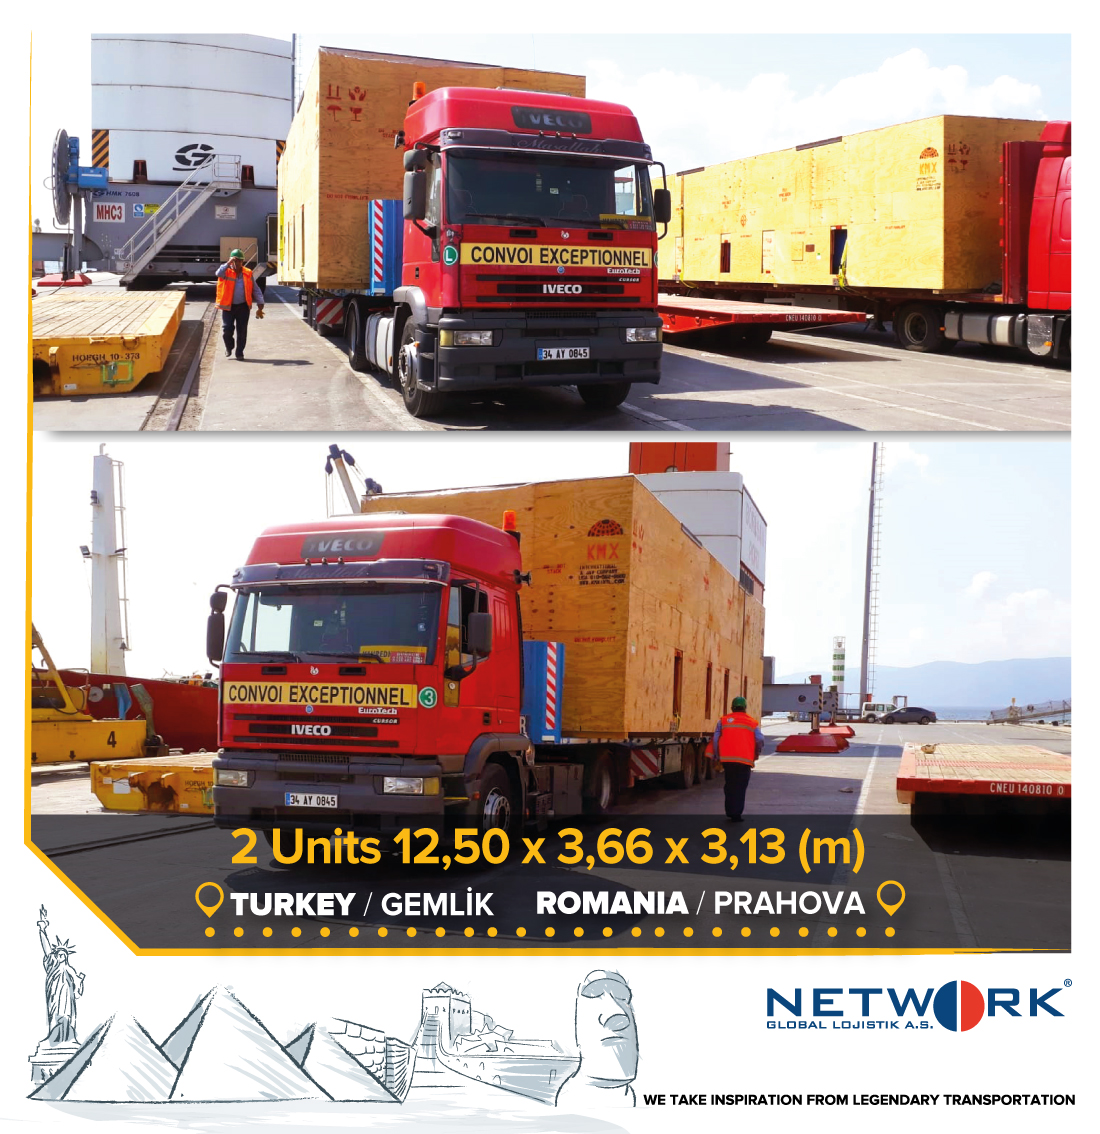 turkey-romania-networkgloballogistics